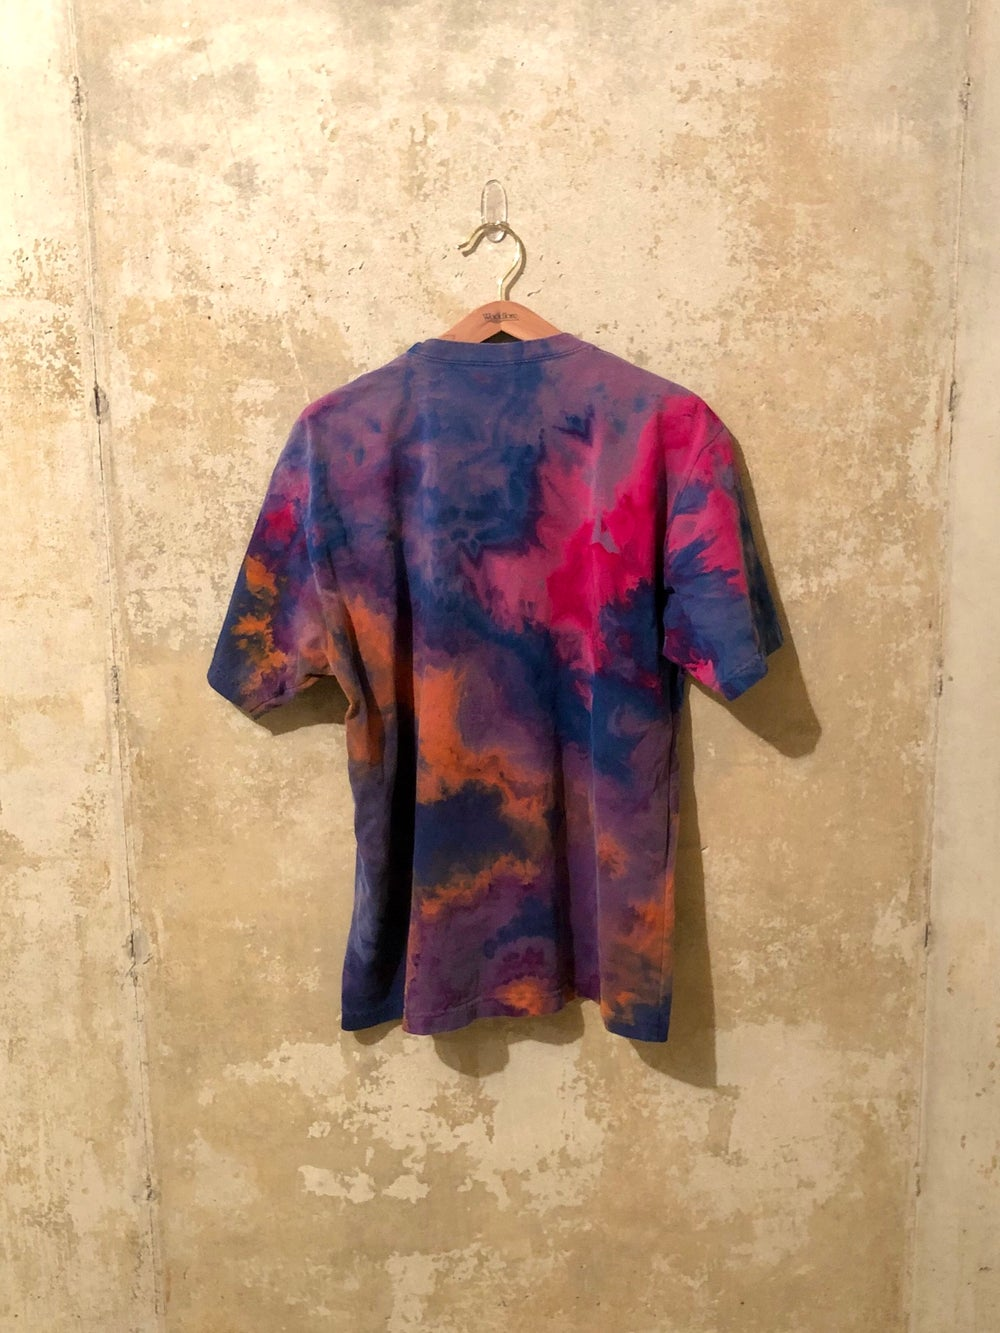 Medium Puff Print Tie Dye Shirt #1